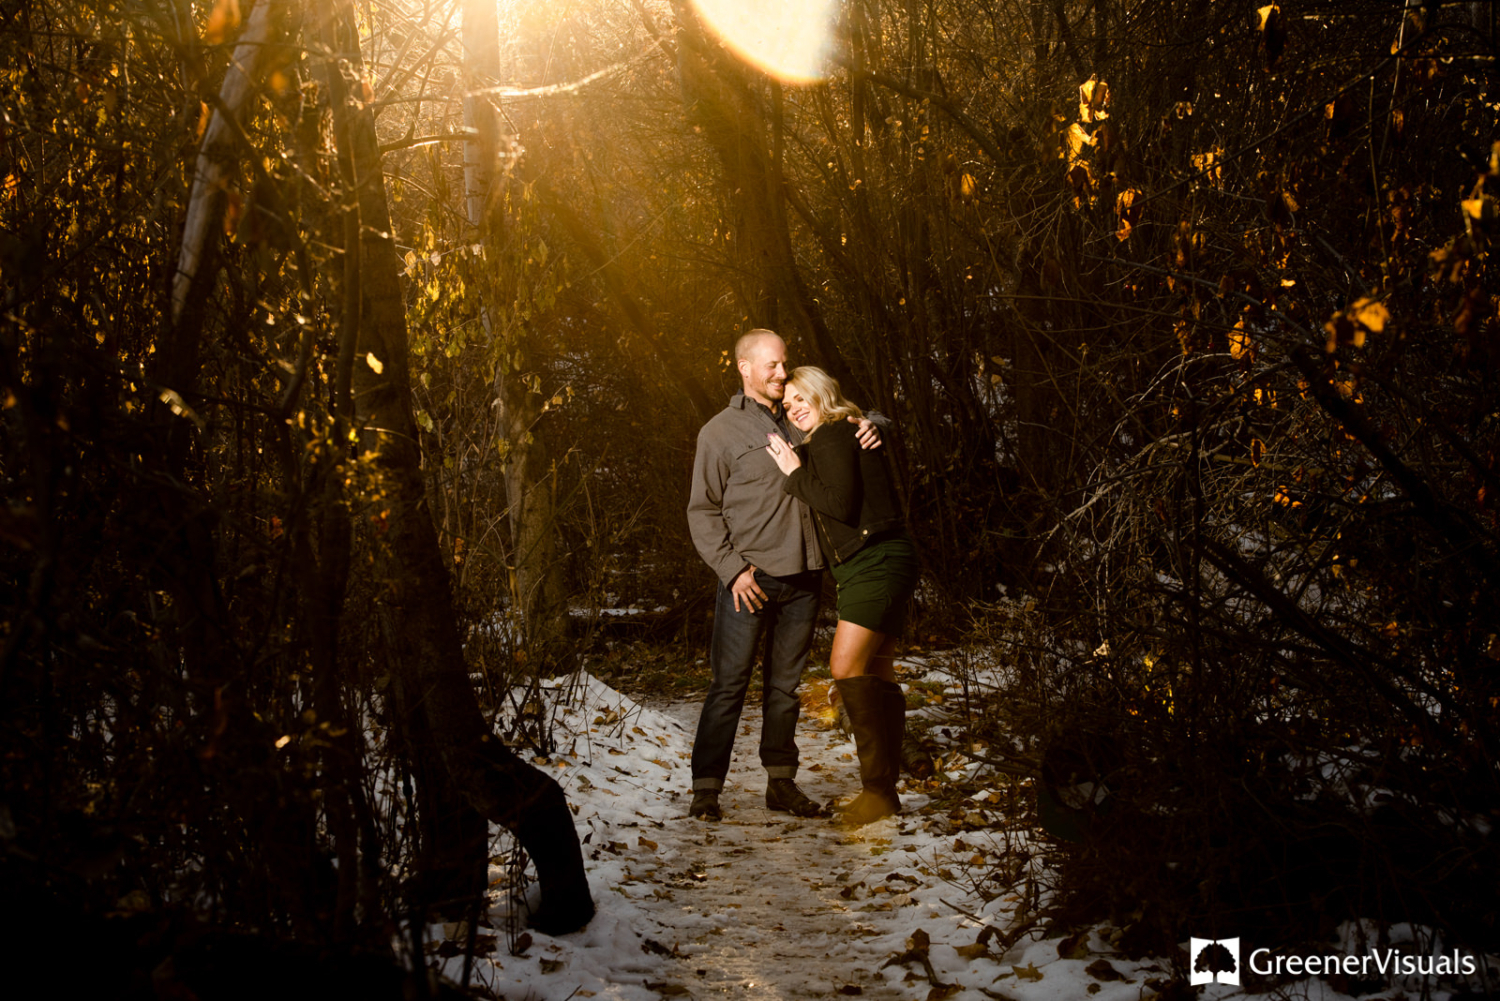 Greener-Visuals-Photography-Best-of-2020-Engagement-Portraits